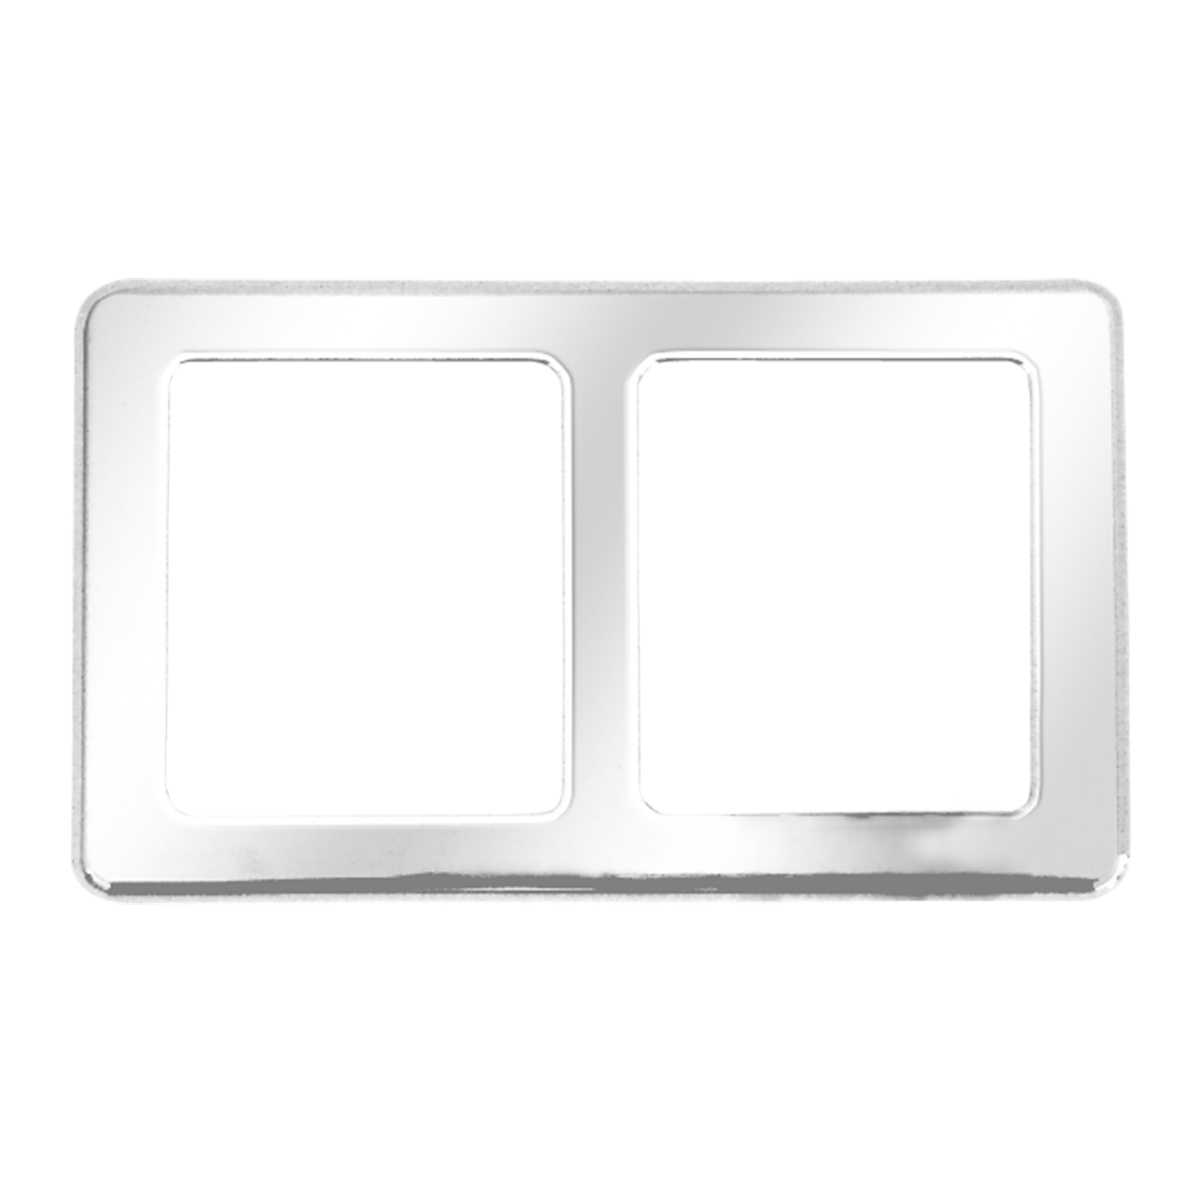 68941 Center Dome Light Cover for Western Star